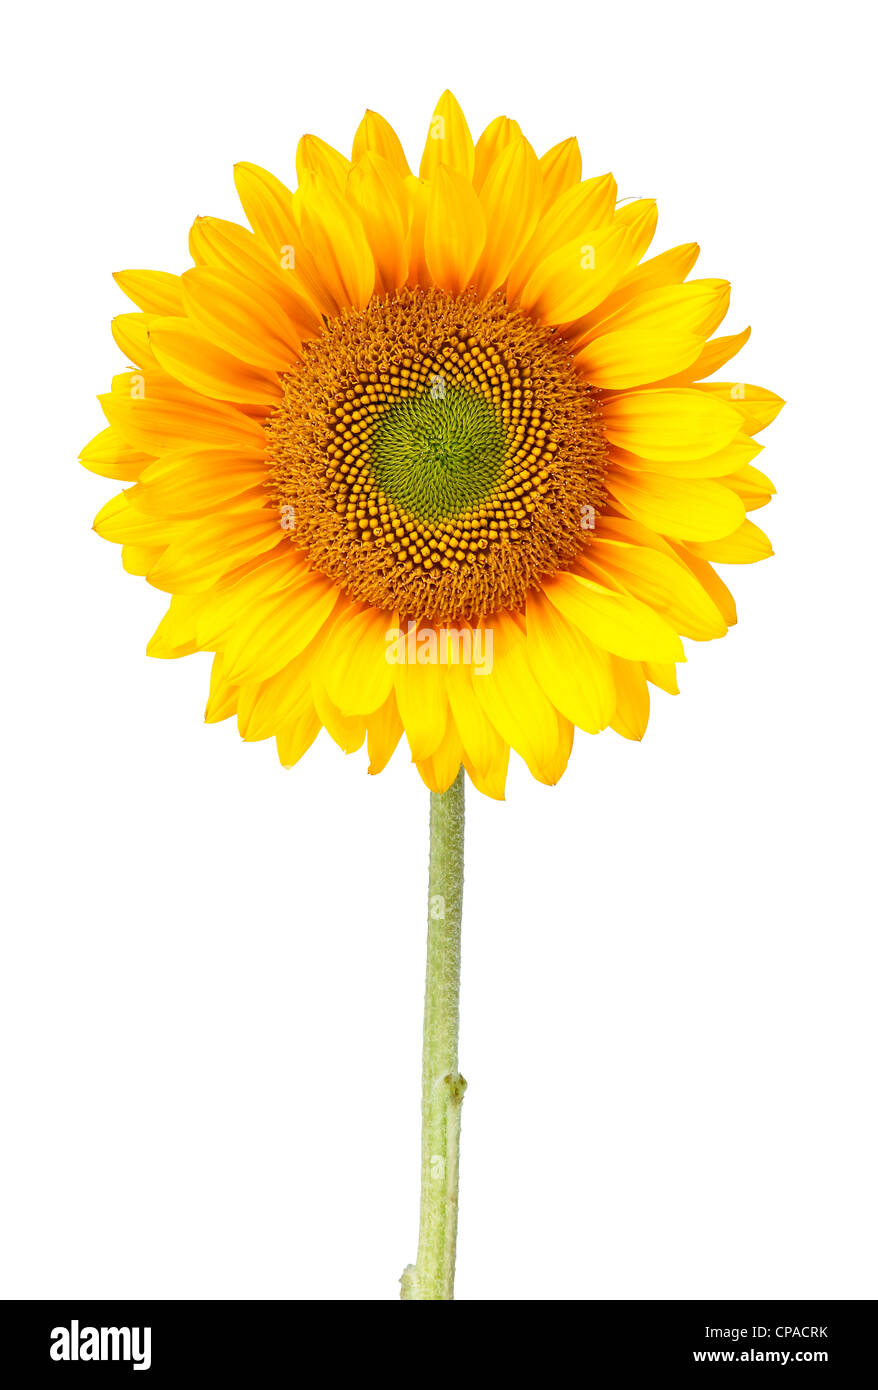 a sunflower isolated on white with clipping path - Stock Image